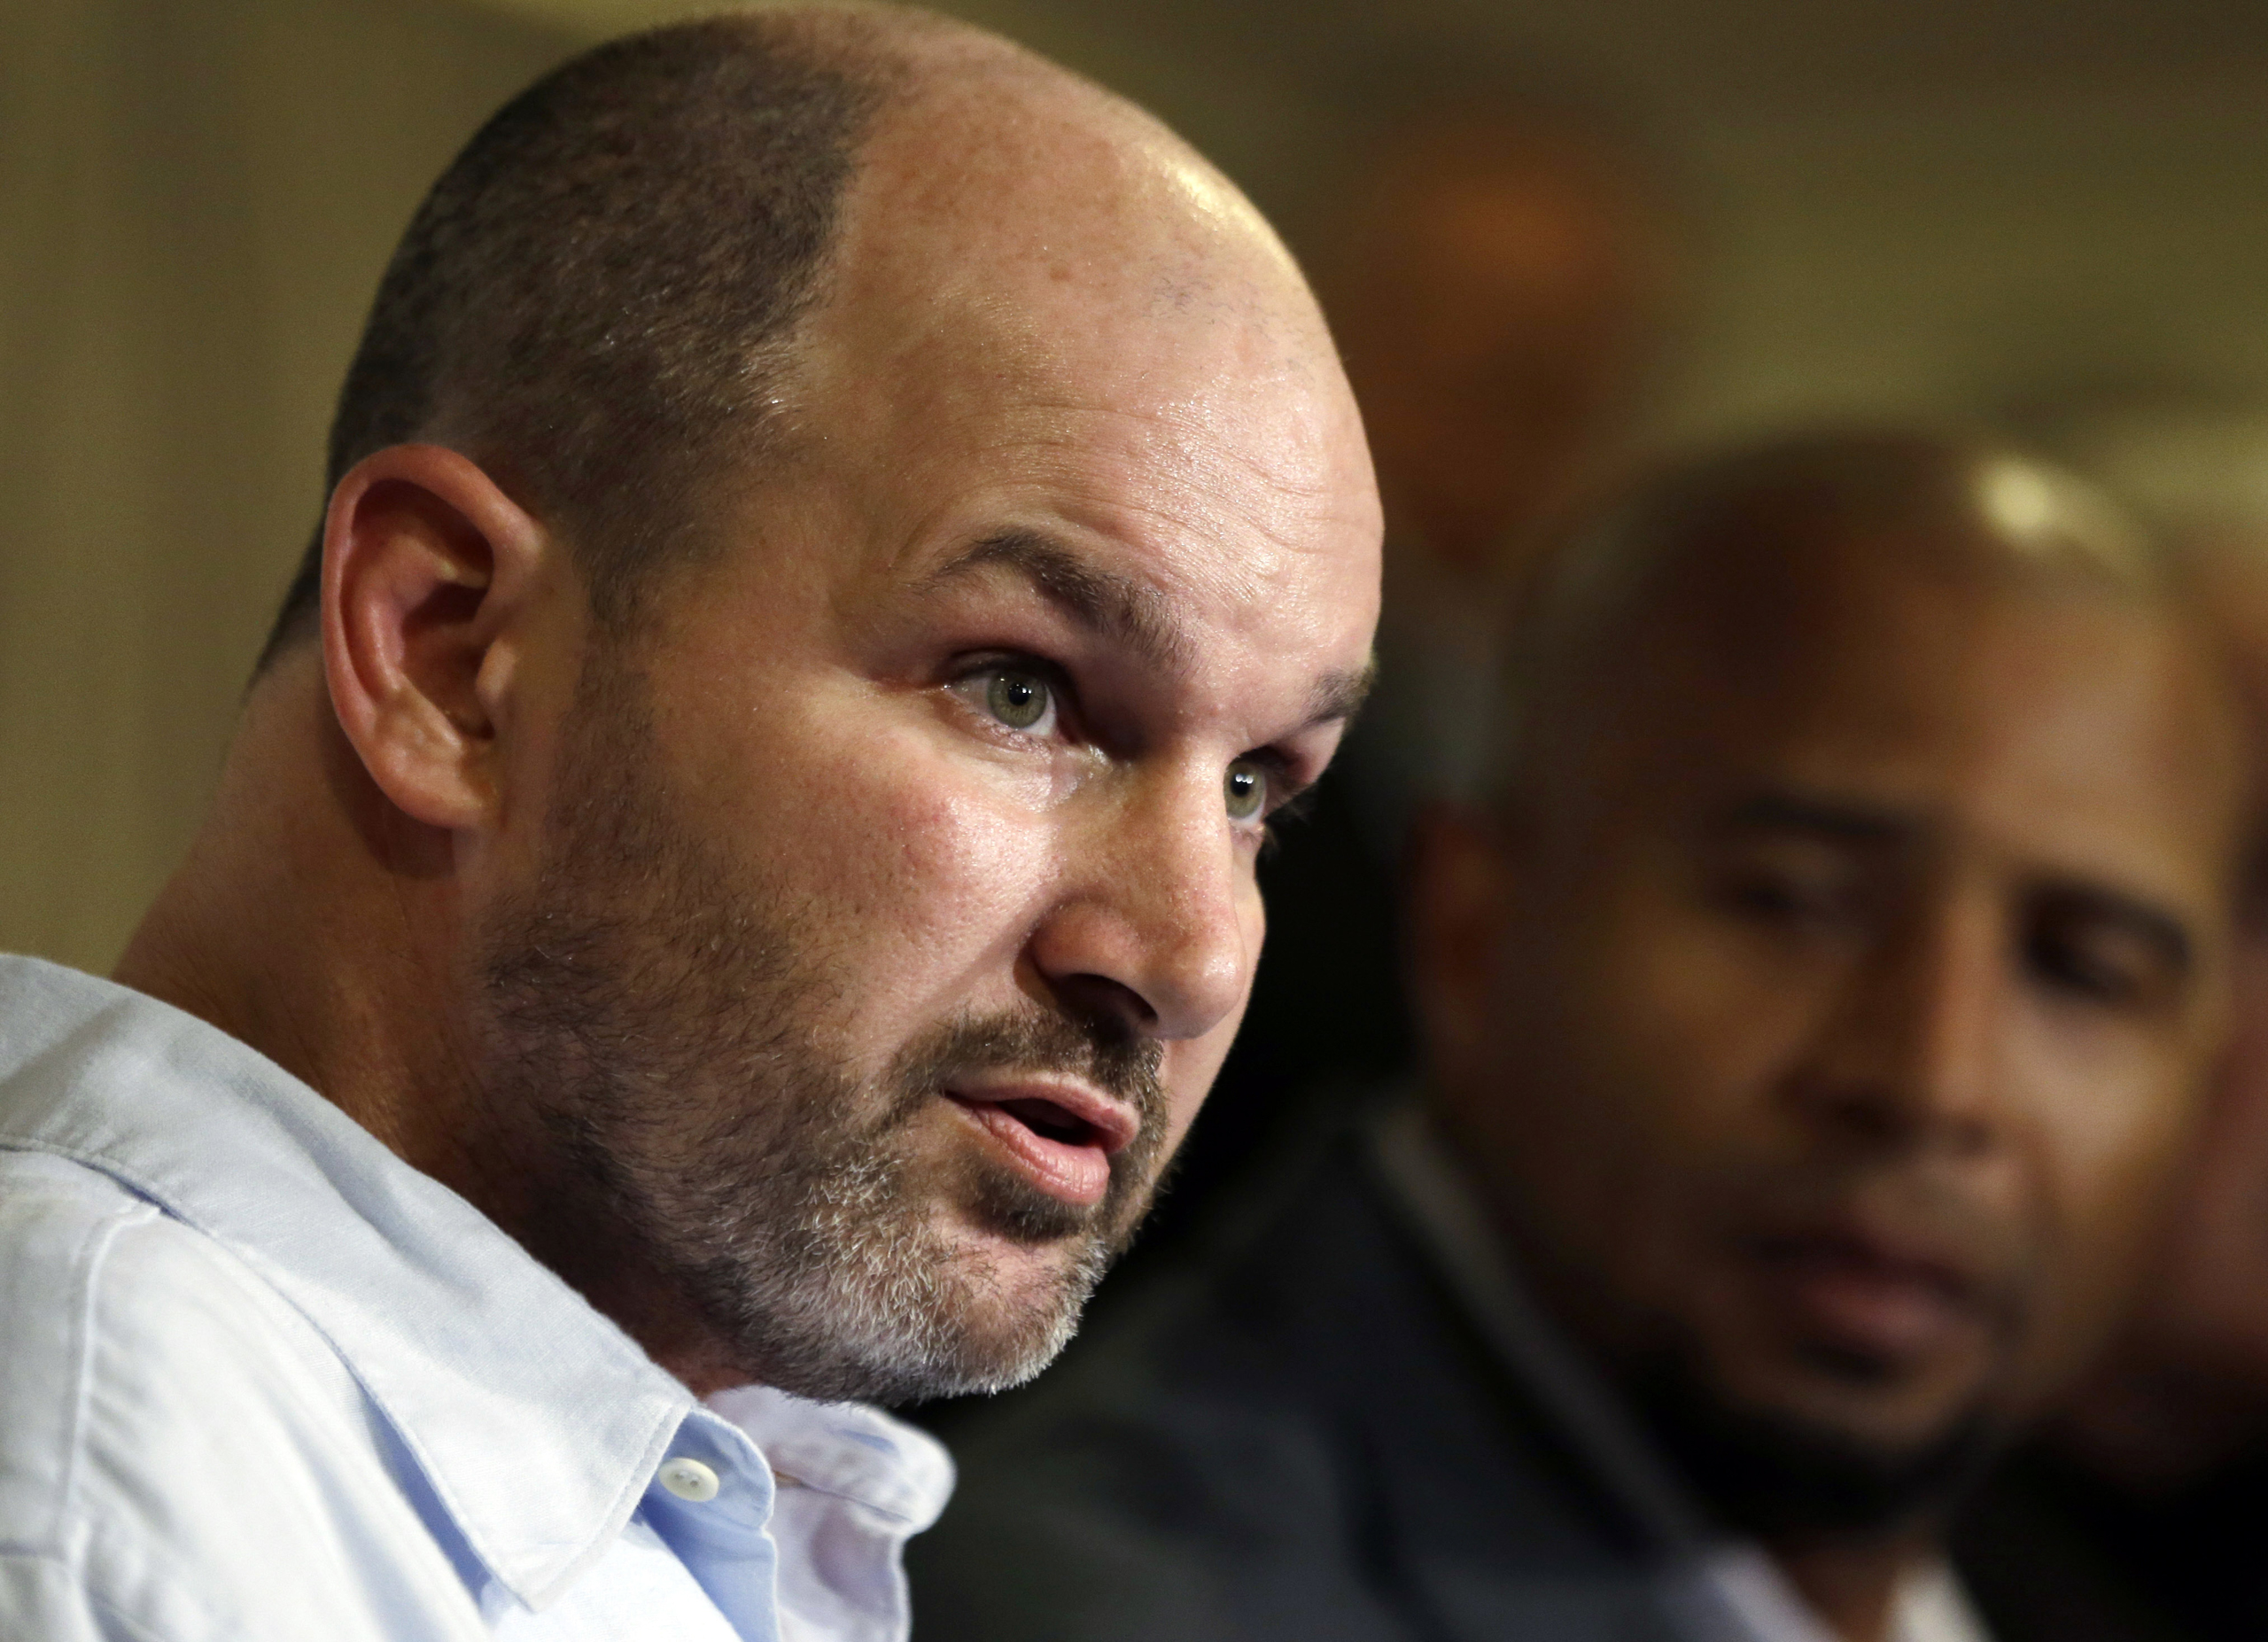 Former NFL player Kevin Turner spoke during a news conference in Philadelphia on April 9, 2013.